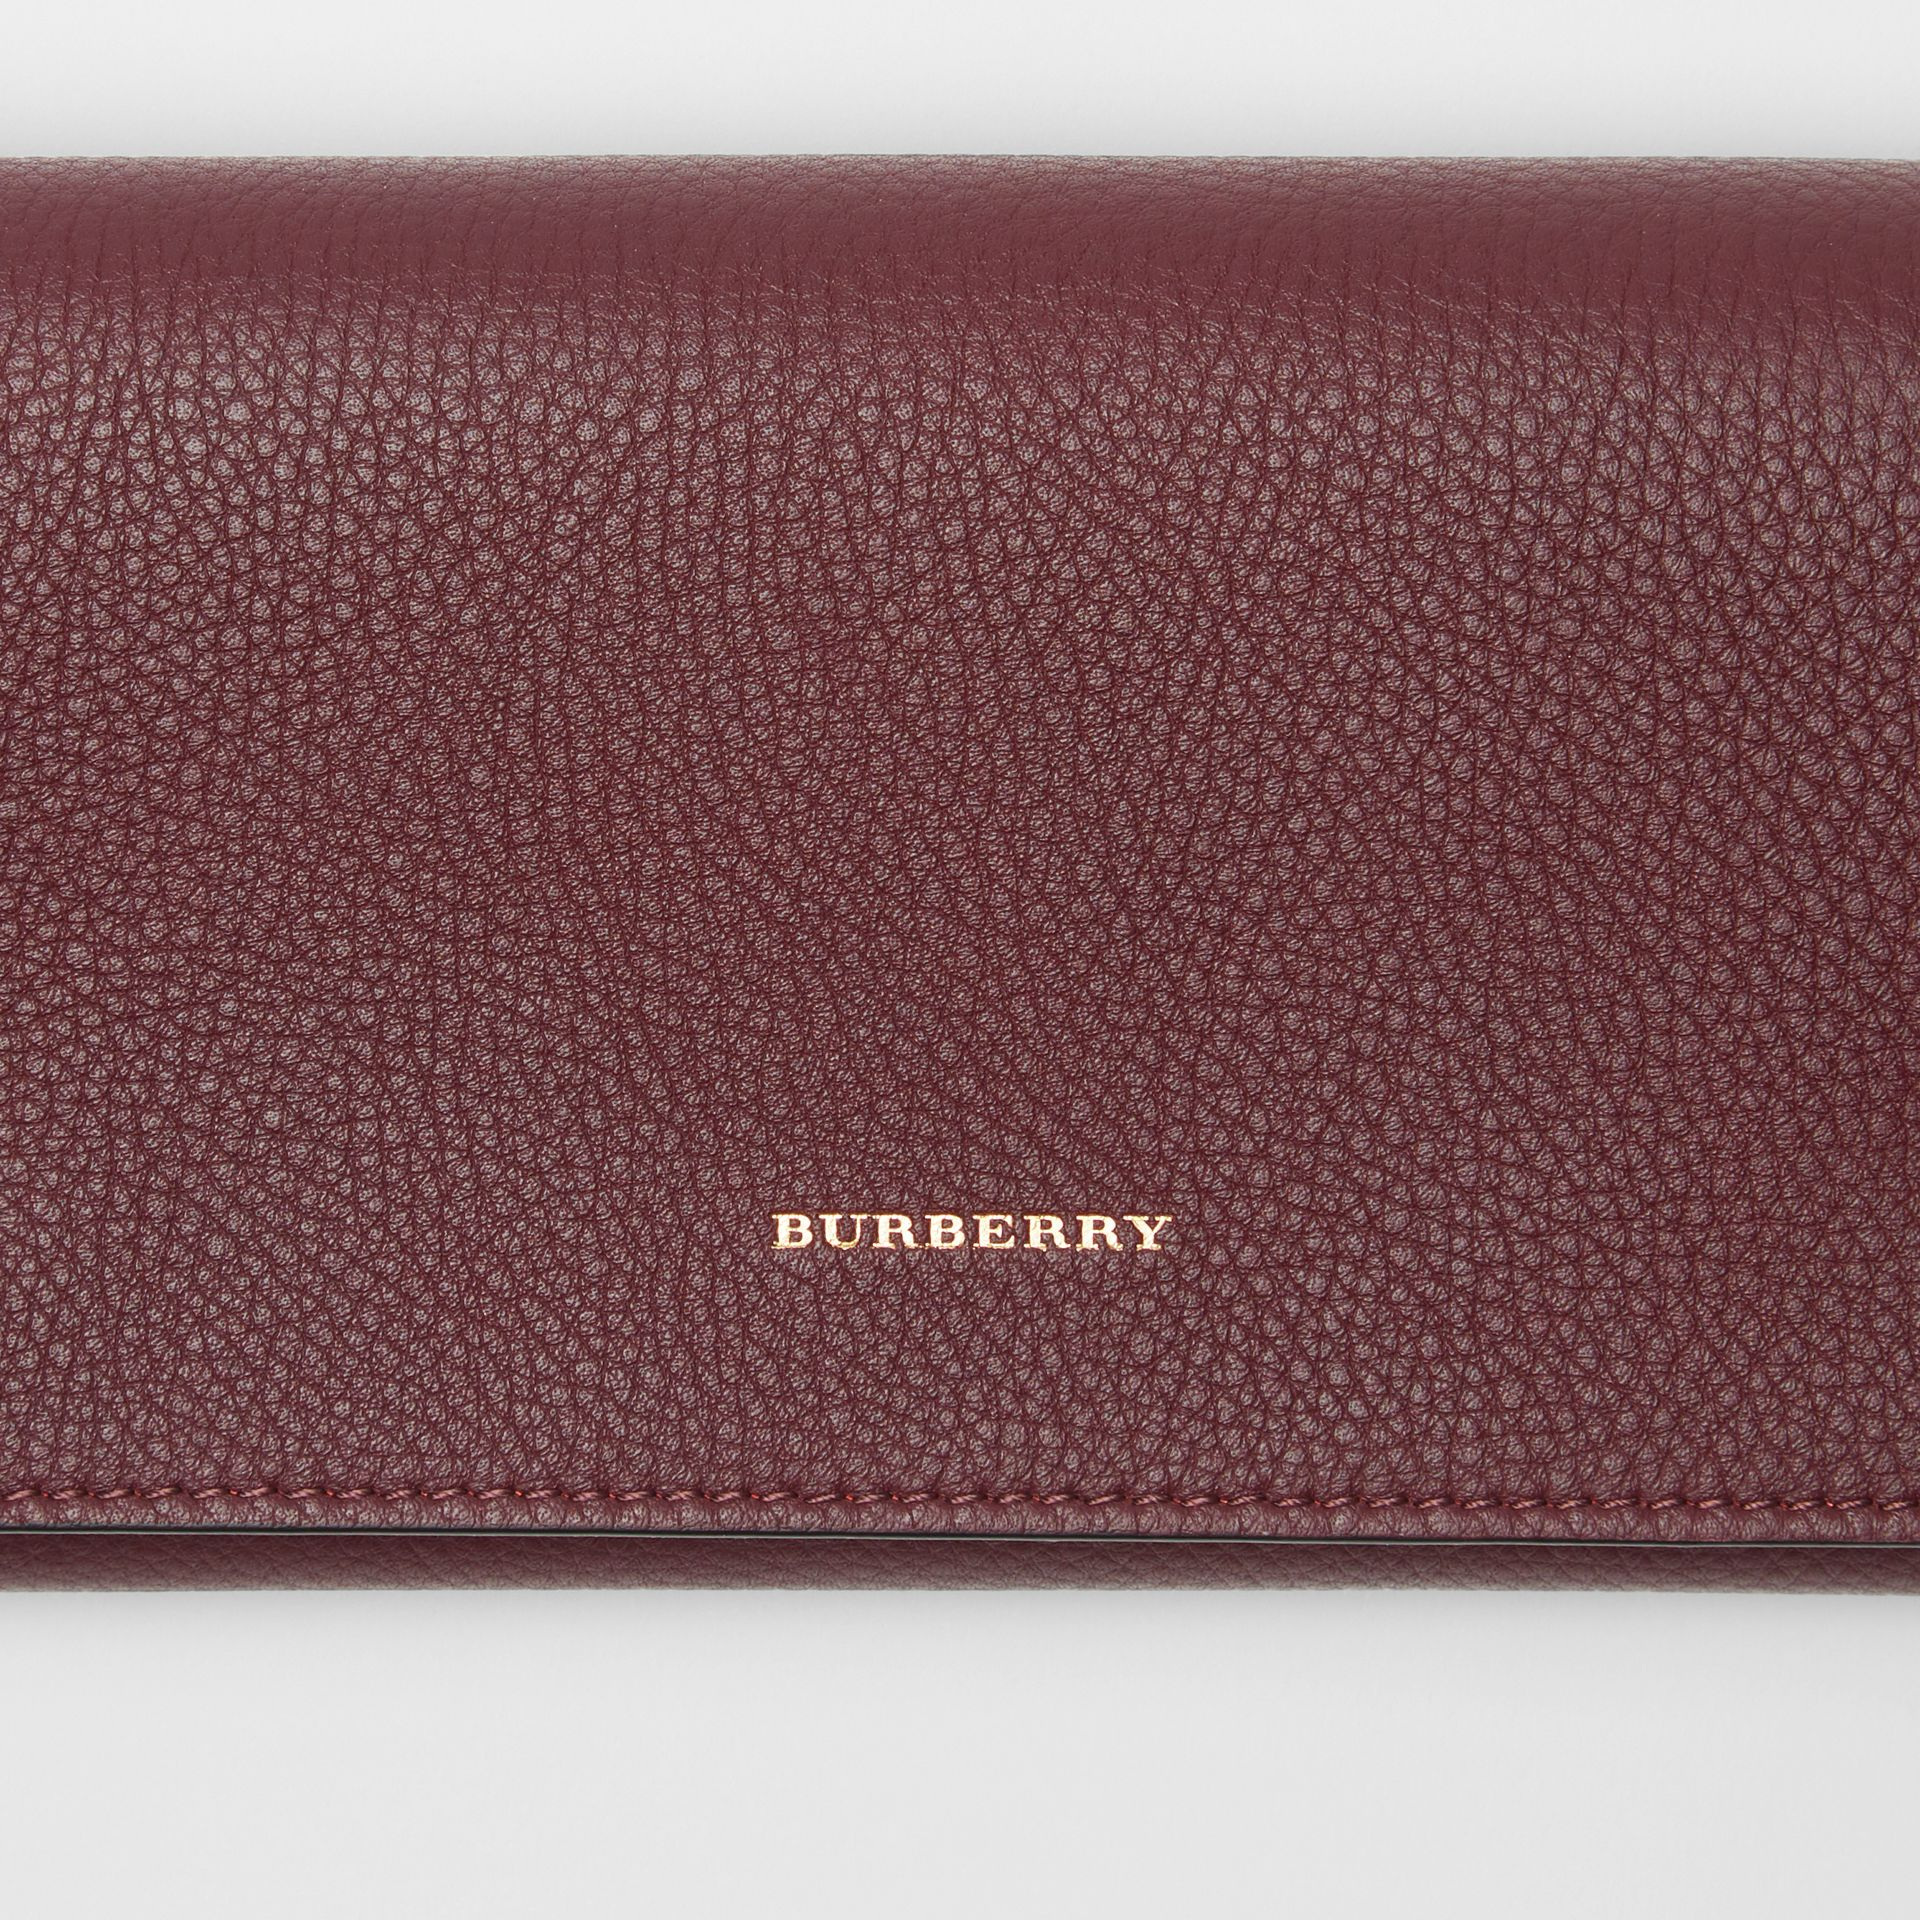 Two-tone Leather Continental Wallet in Deep Claret - Women | Burberry Canada - gallery image 1